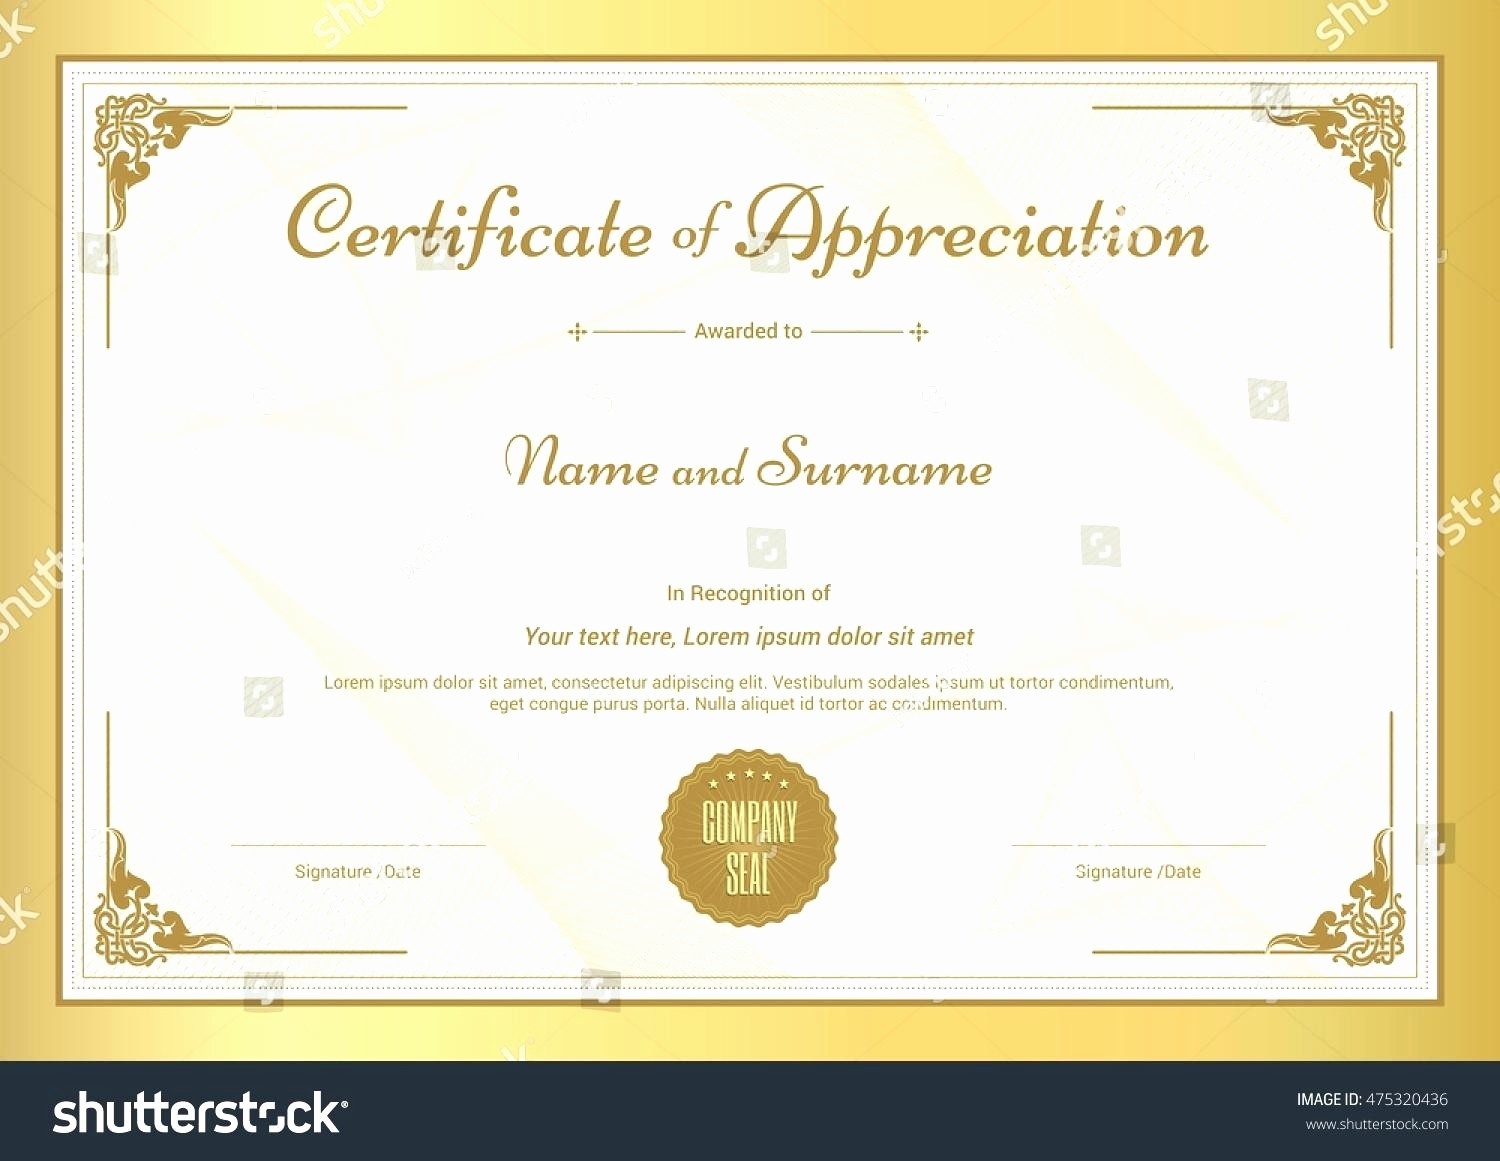 Certificate Of Recognition Editable Template Fresh Template Editable Certificate Appreciation Template